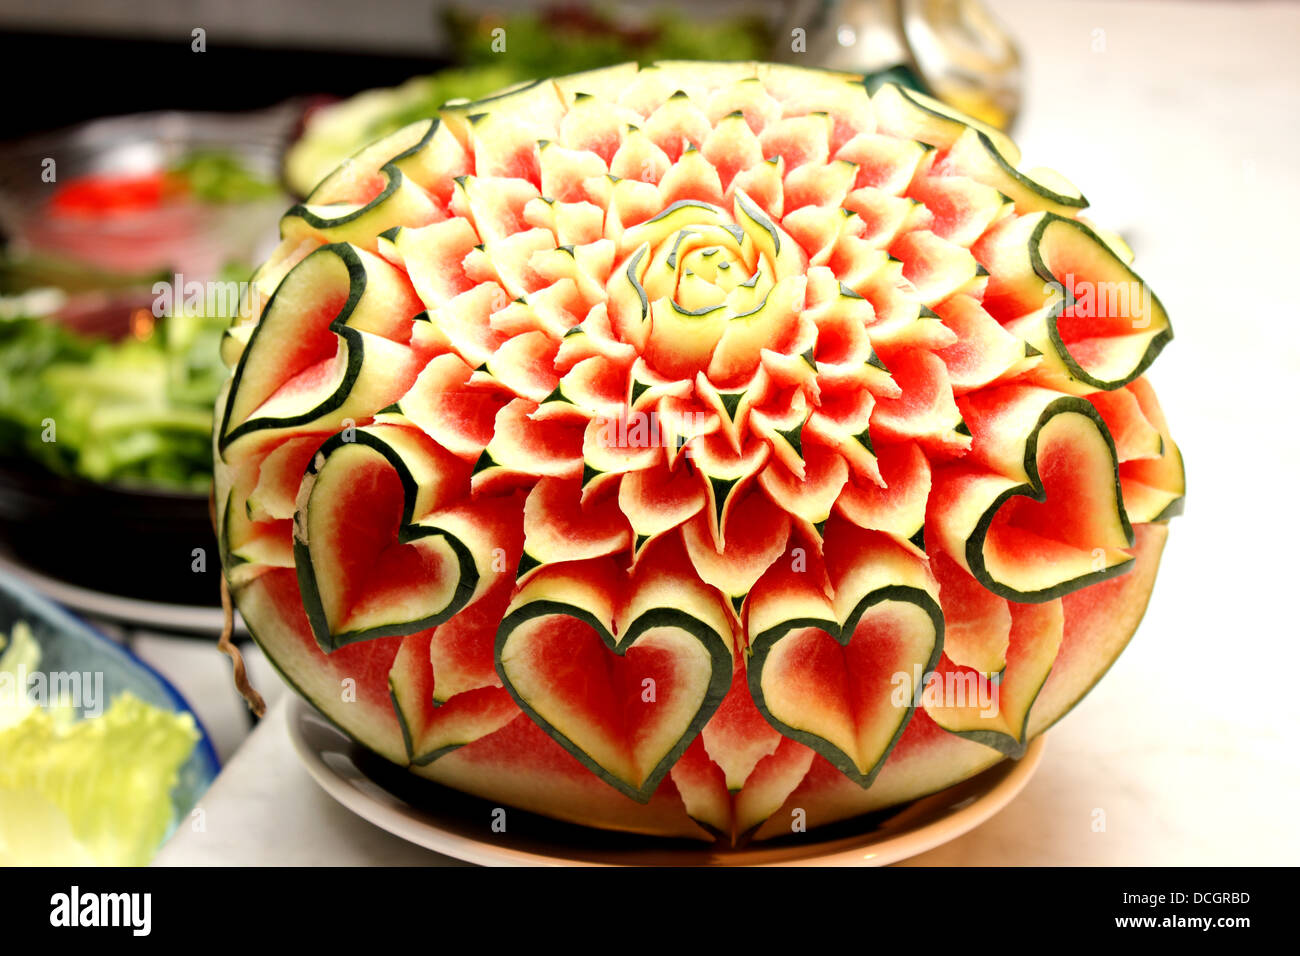 Watermelon carving stock photos watermelon carving stock images